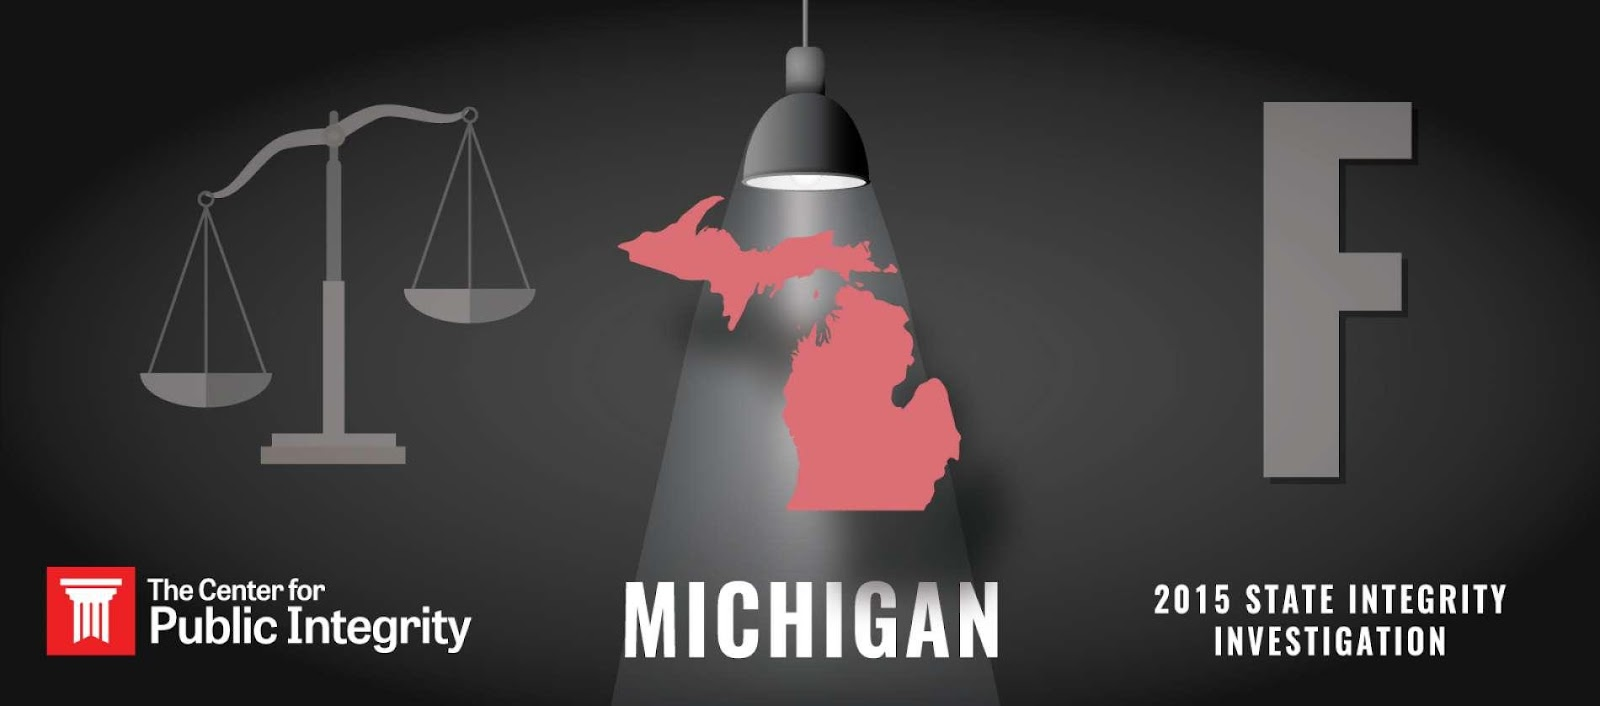 http://cloudfront-4.publicintegrity.org/files/styles/24col/public/img/Michigan_0.jpg?itok=3_ipcxki